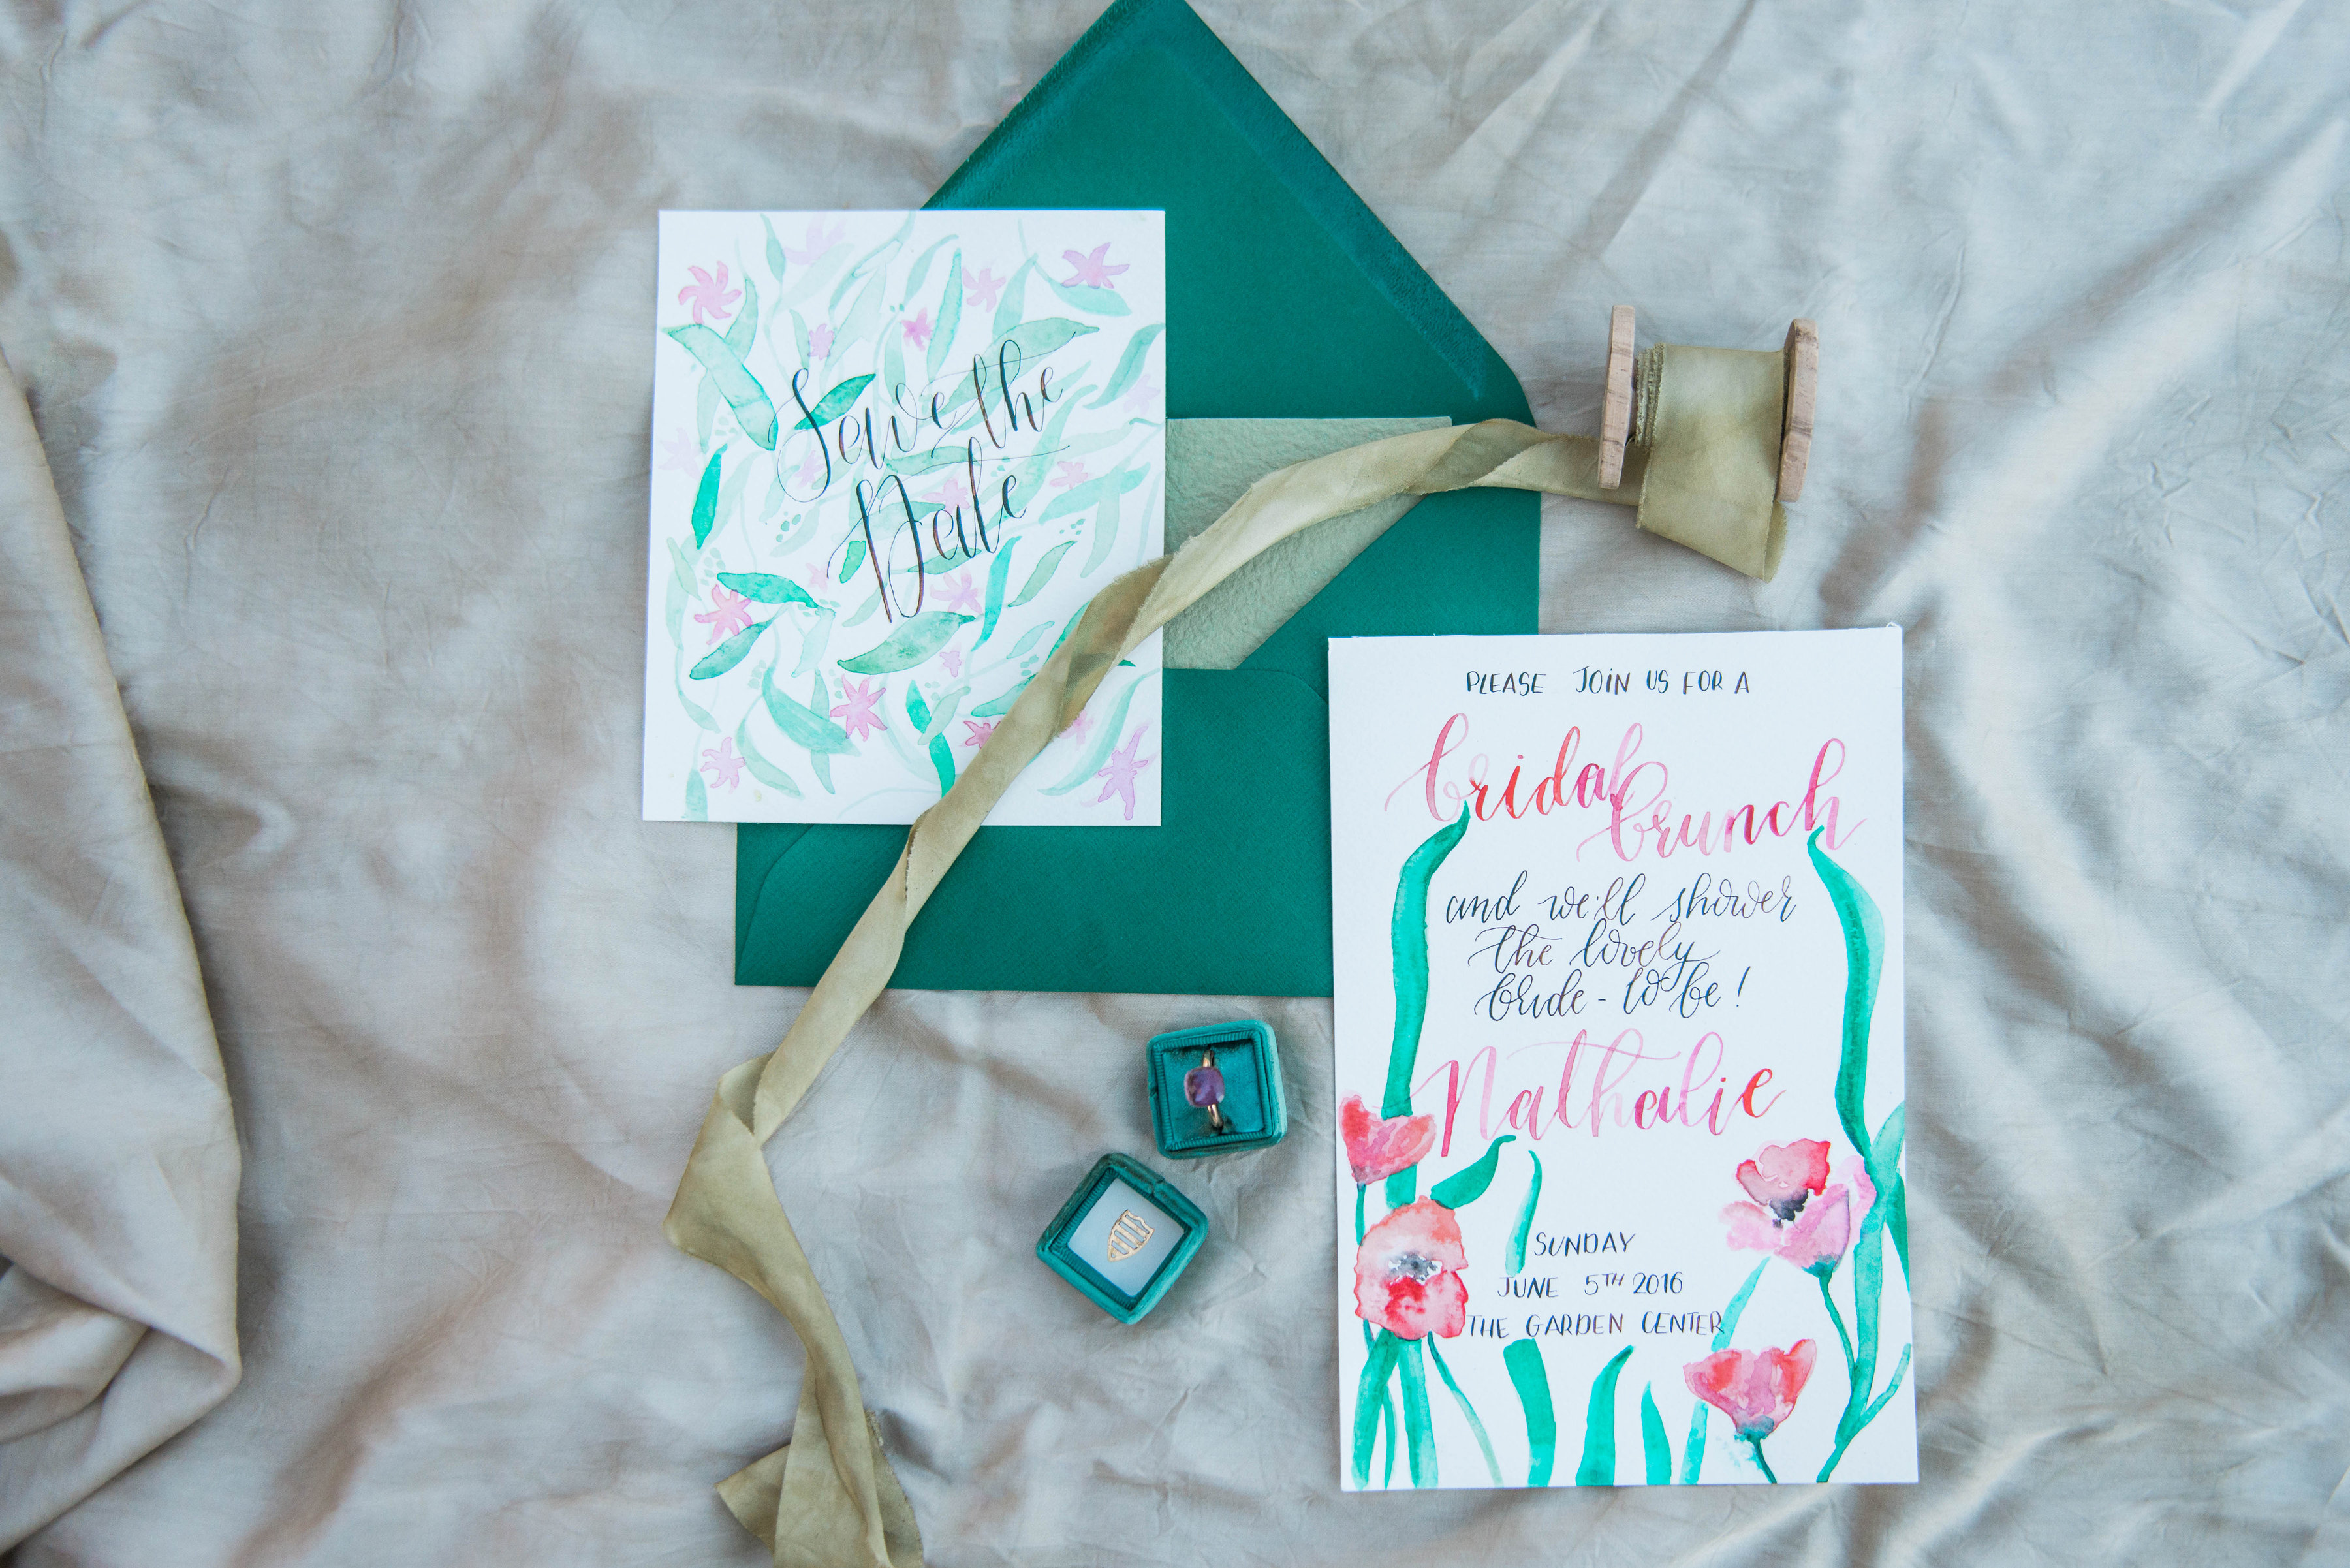 Bridal Shower stationery by Studio Blauw Moderne Kaligrafie